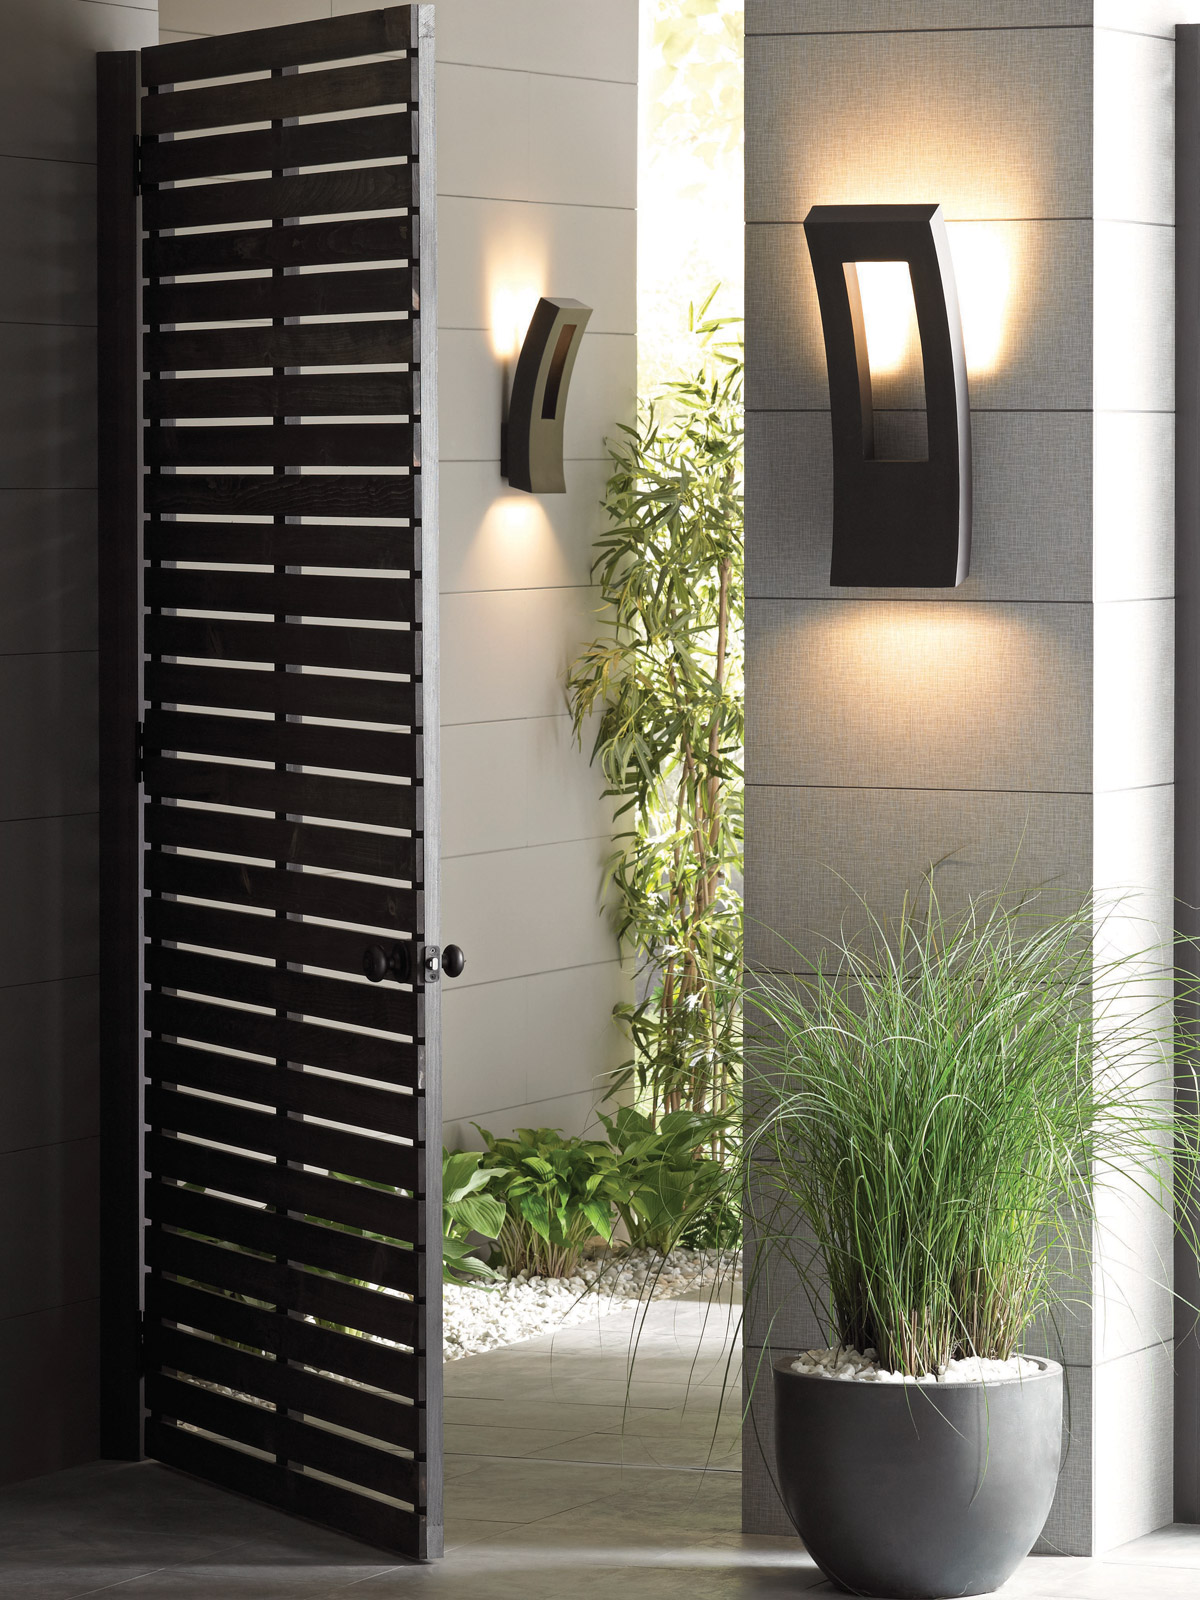 Dawn Indoor/Outdoor LED Wall Sconce by Modern Forms ... on Modern Indoor Wall Sconce id=85121